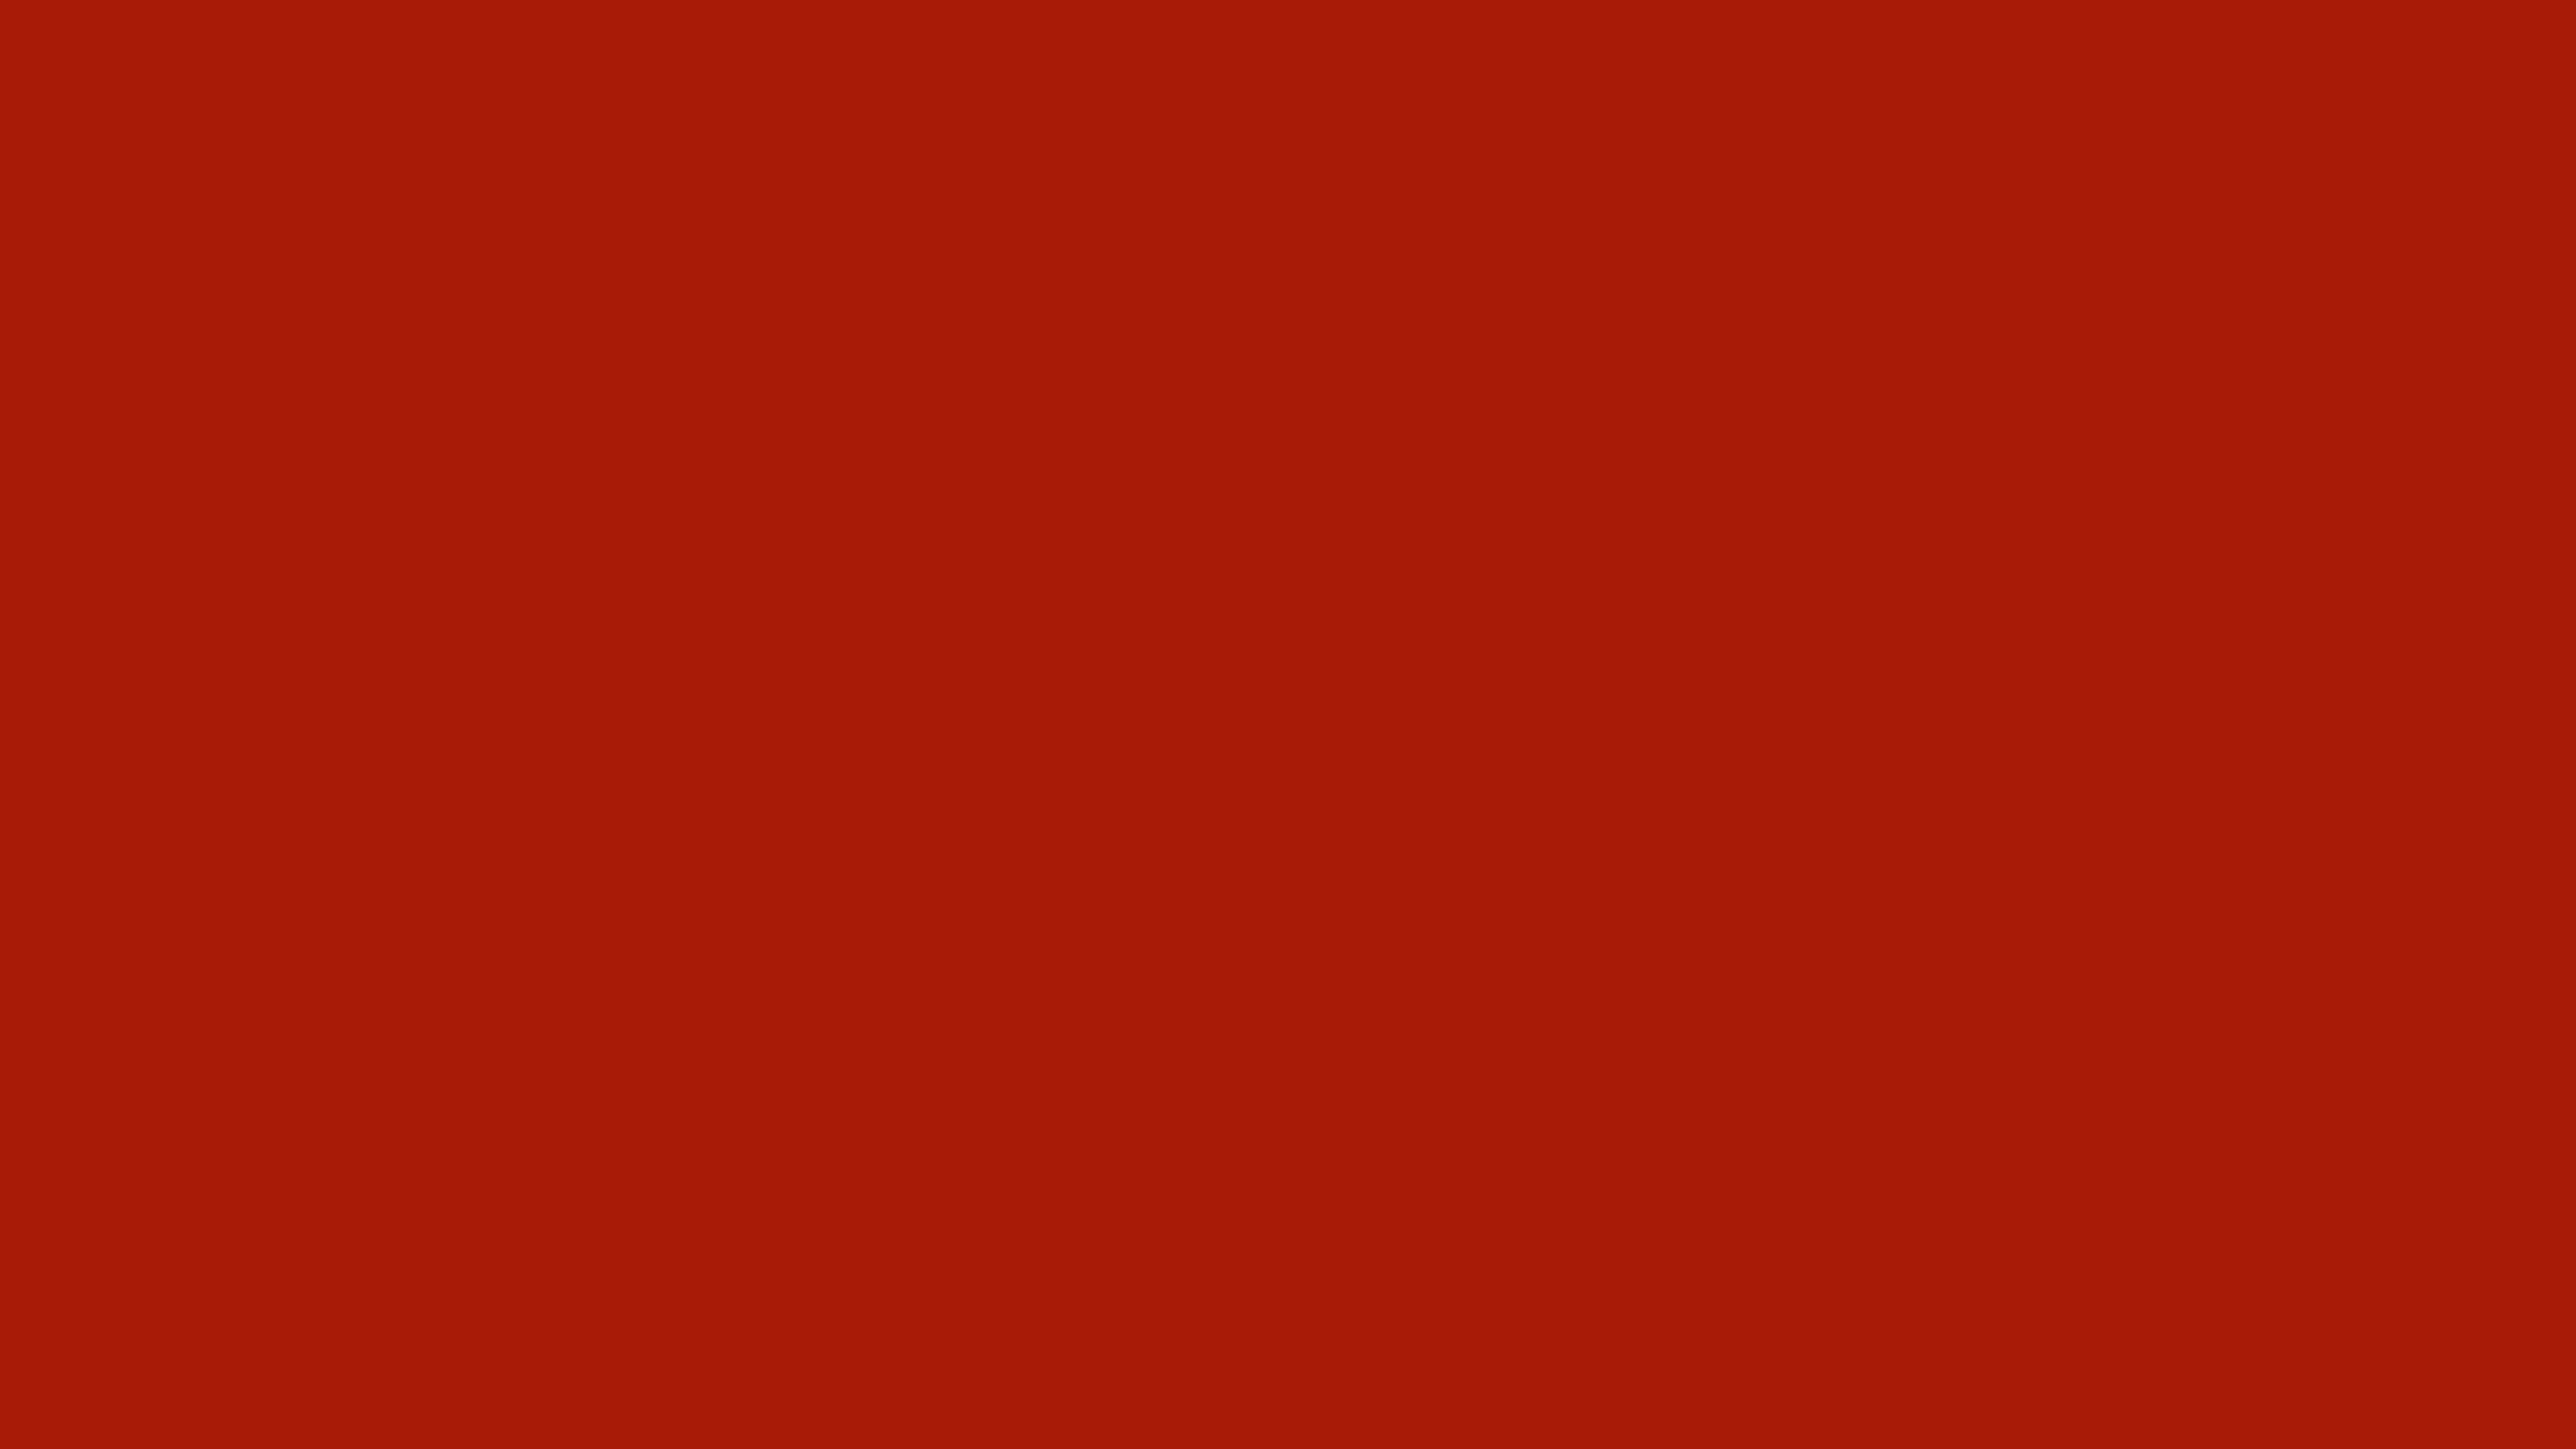 5120x2880 Rufous Solid Color Background